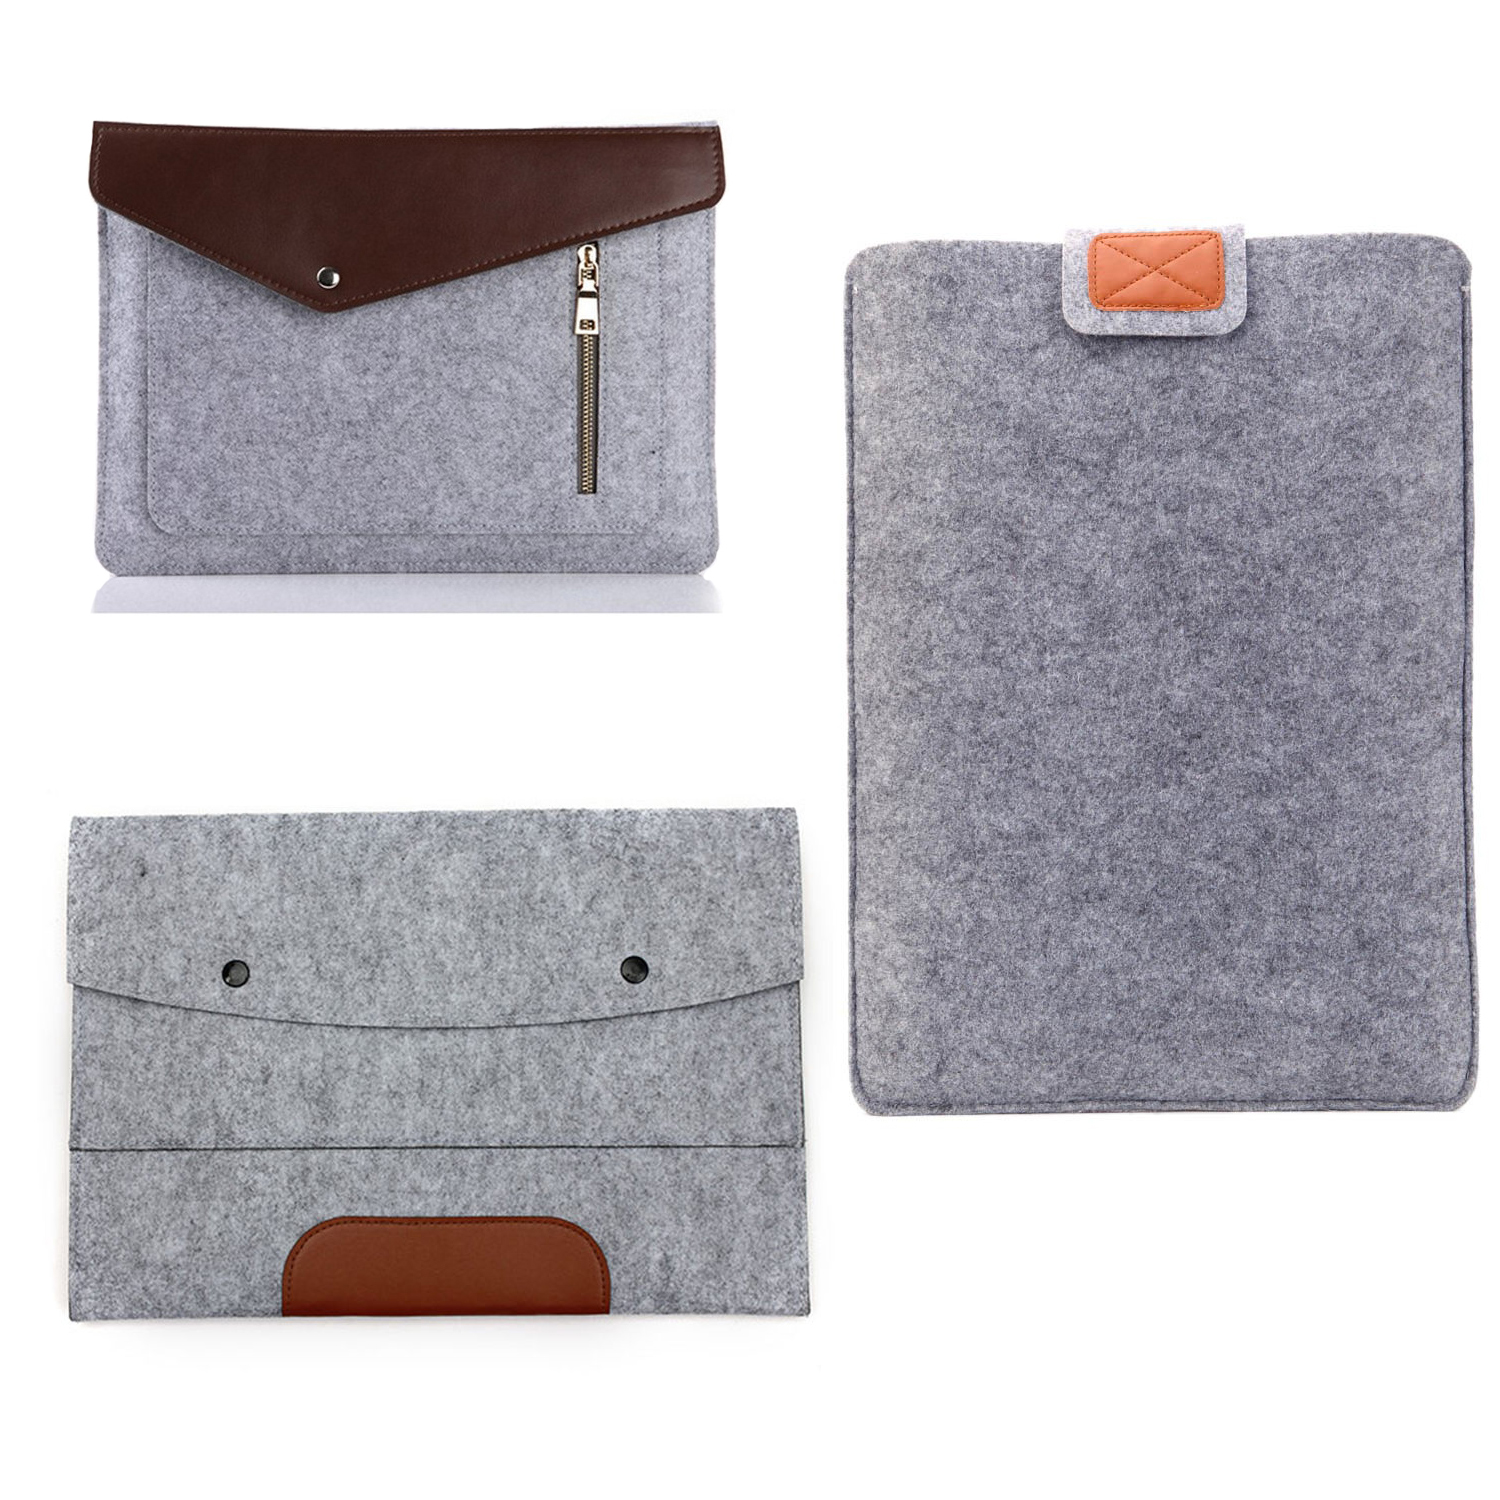 2017 Viviration 15.4 15 15.6 Laptop Sleeve Bag Felt Bags Cover Portable Cases Pouch Protector For Macbook Pro 15.4 Notebook